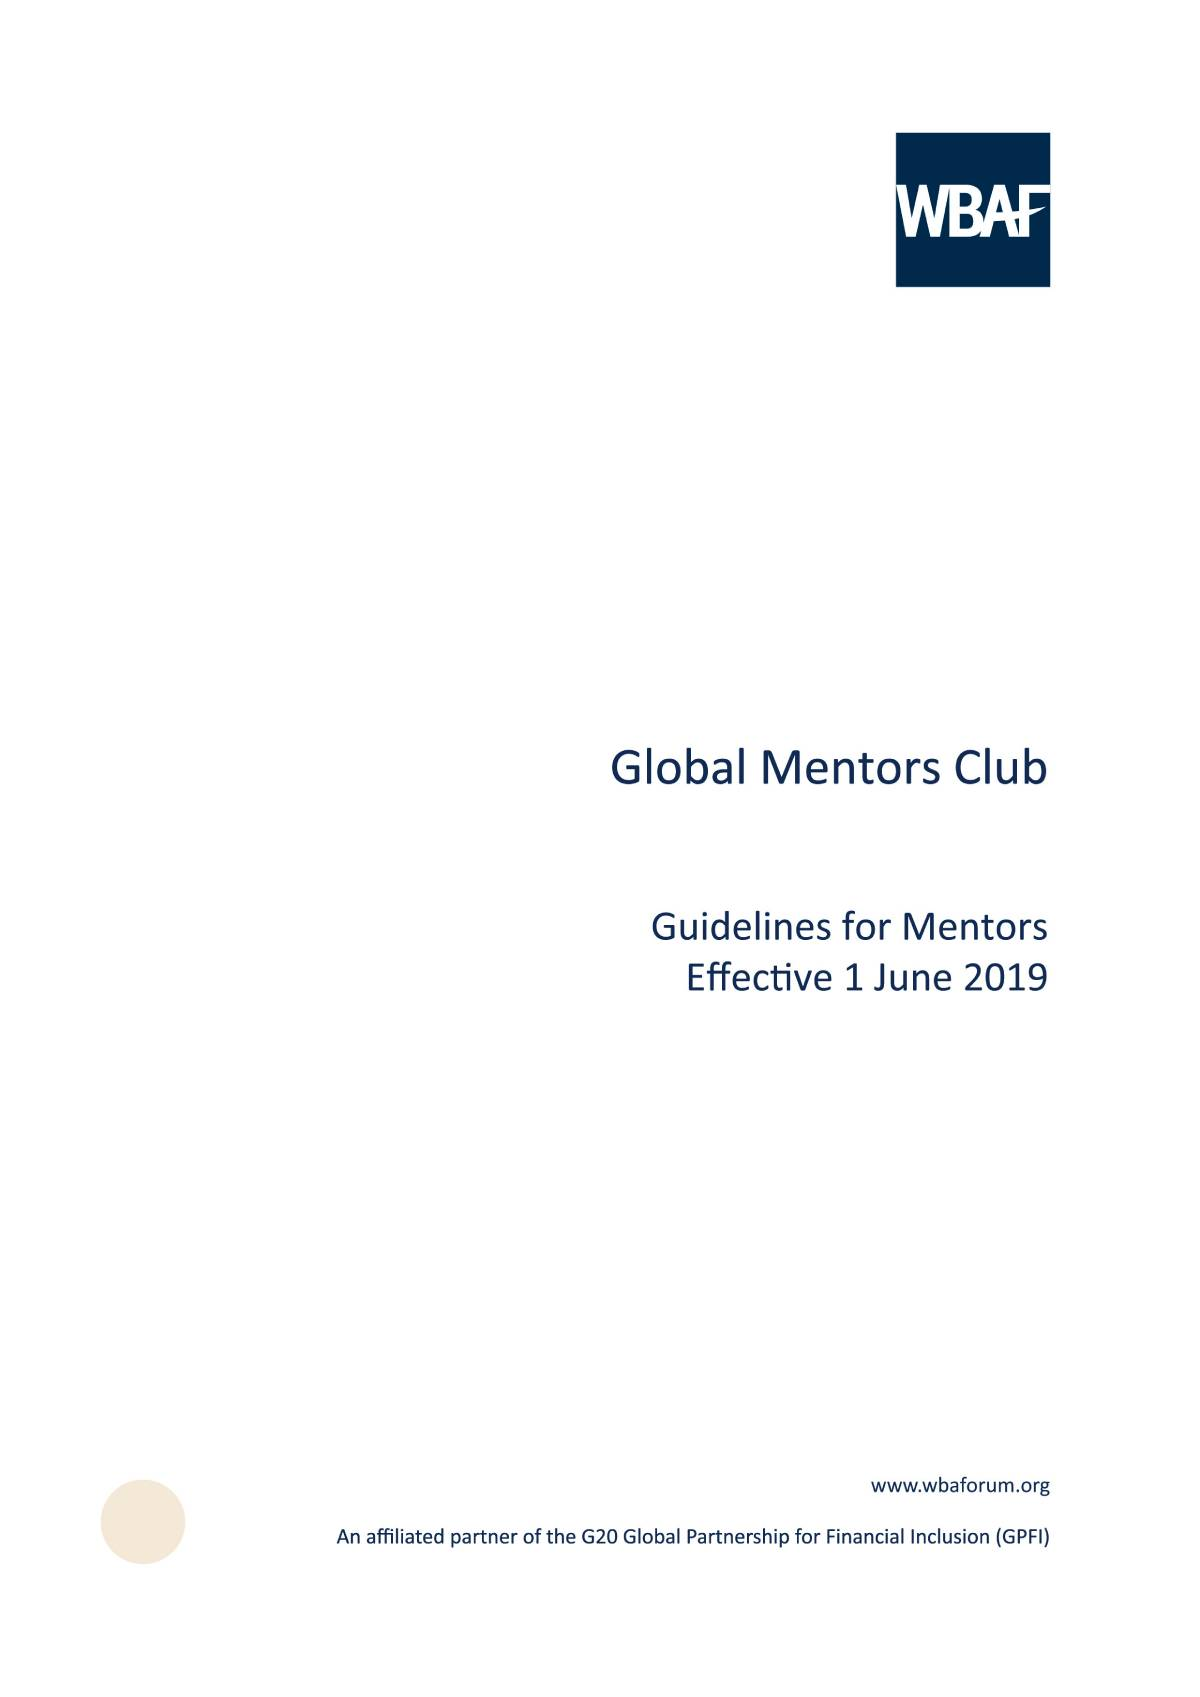 Global Mentors Club - Guidelines for Mentors